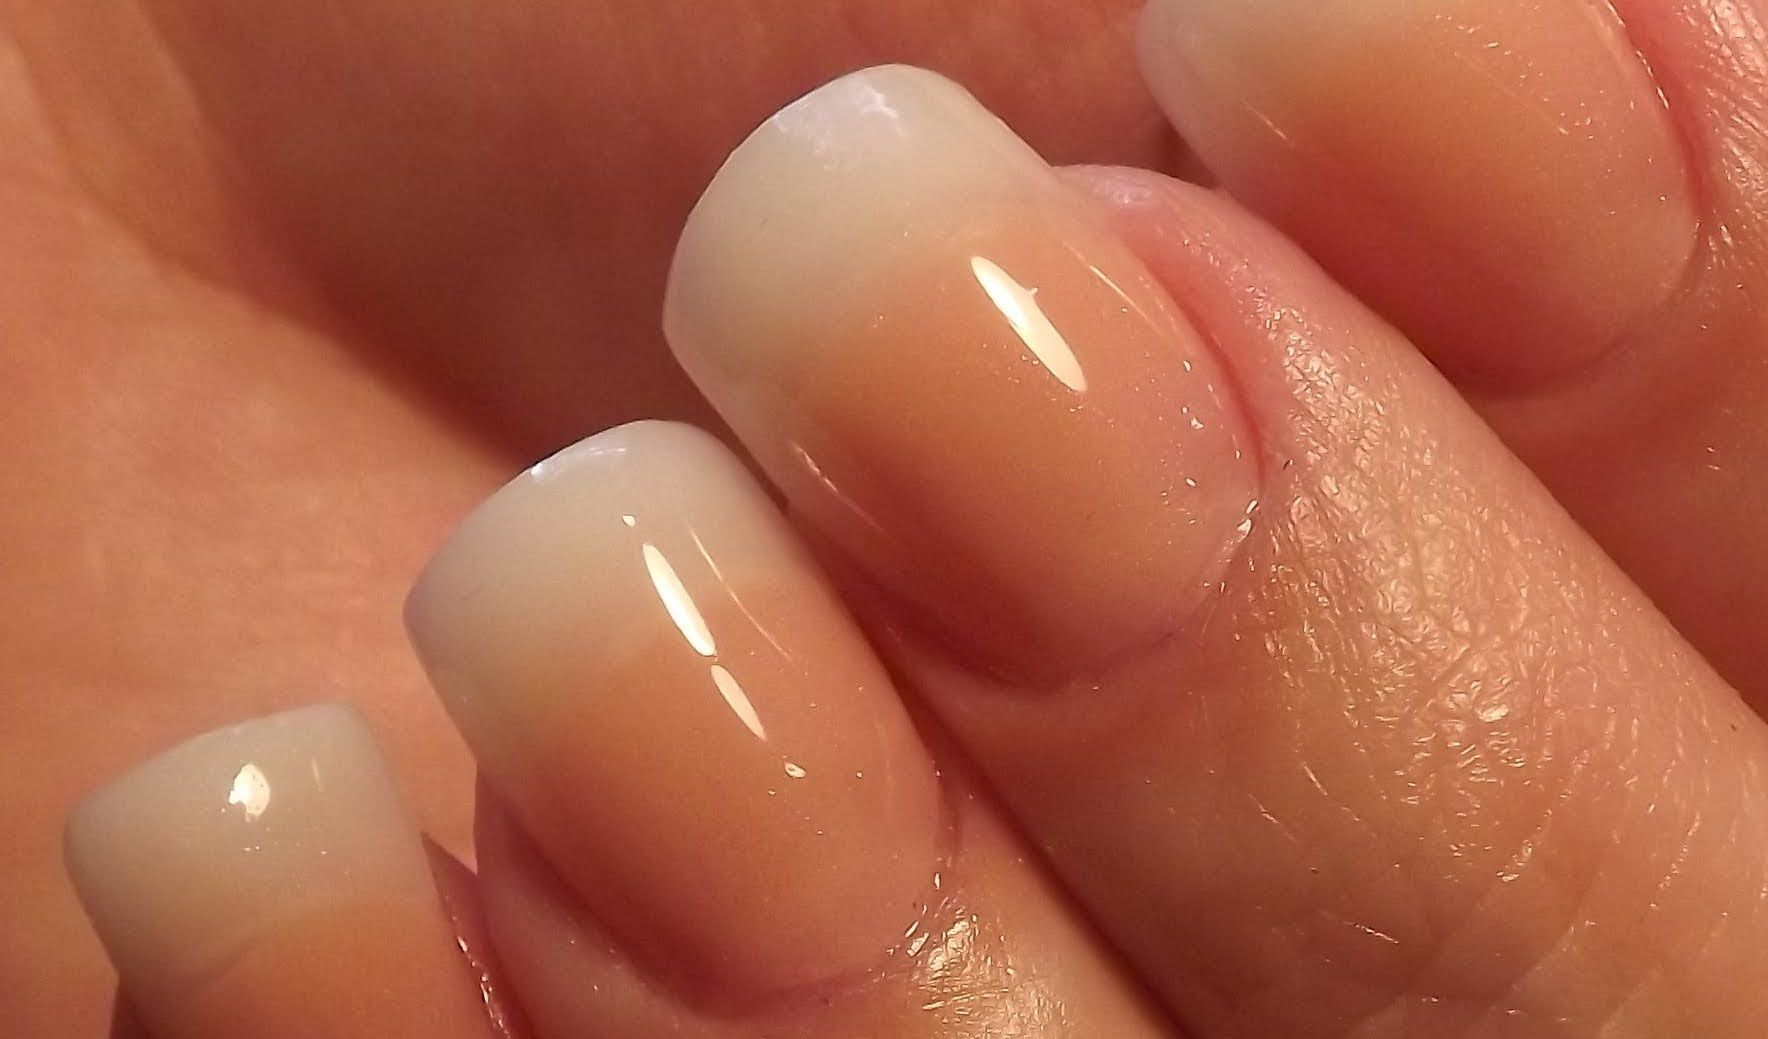 How To Do Your Own Acrylic Nails At Home Acrylic Nails At Home Fake Nails Diy Nails At Home